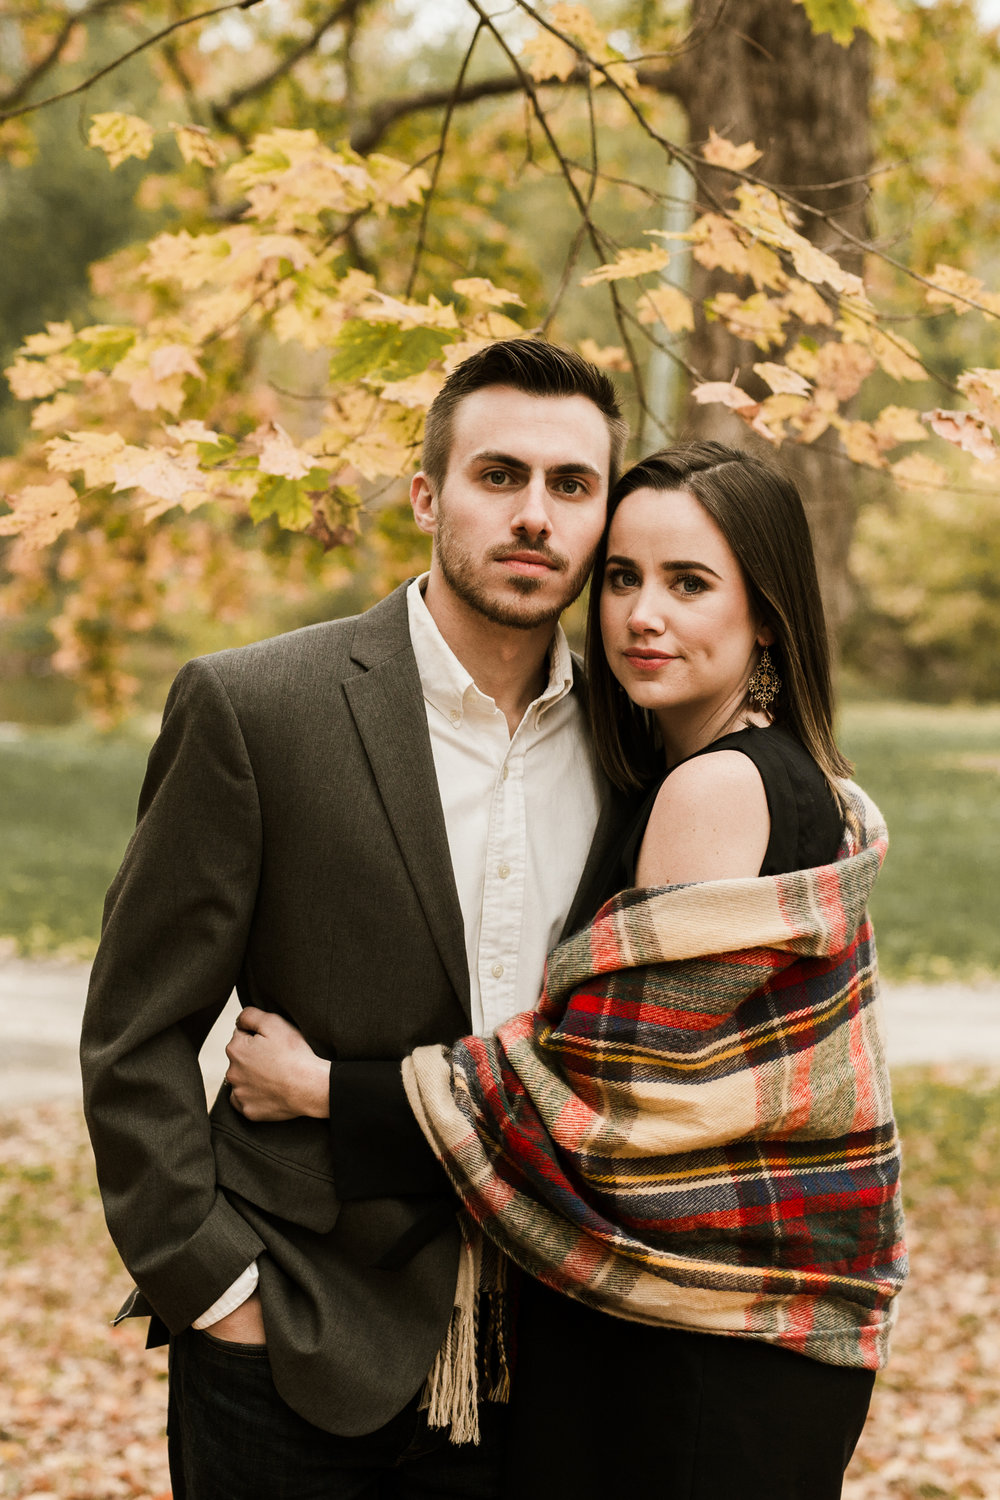 Kelsey and Daniel Engagement 2018 Crystal Ludwick Photo Louisville Wedding Photographer Kentucky Wedding Photographer (13 of 31).jpg